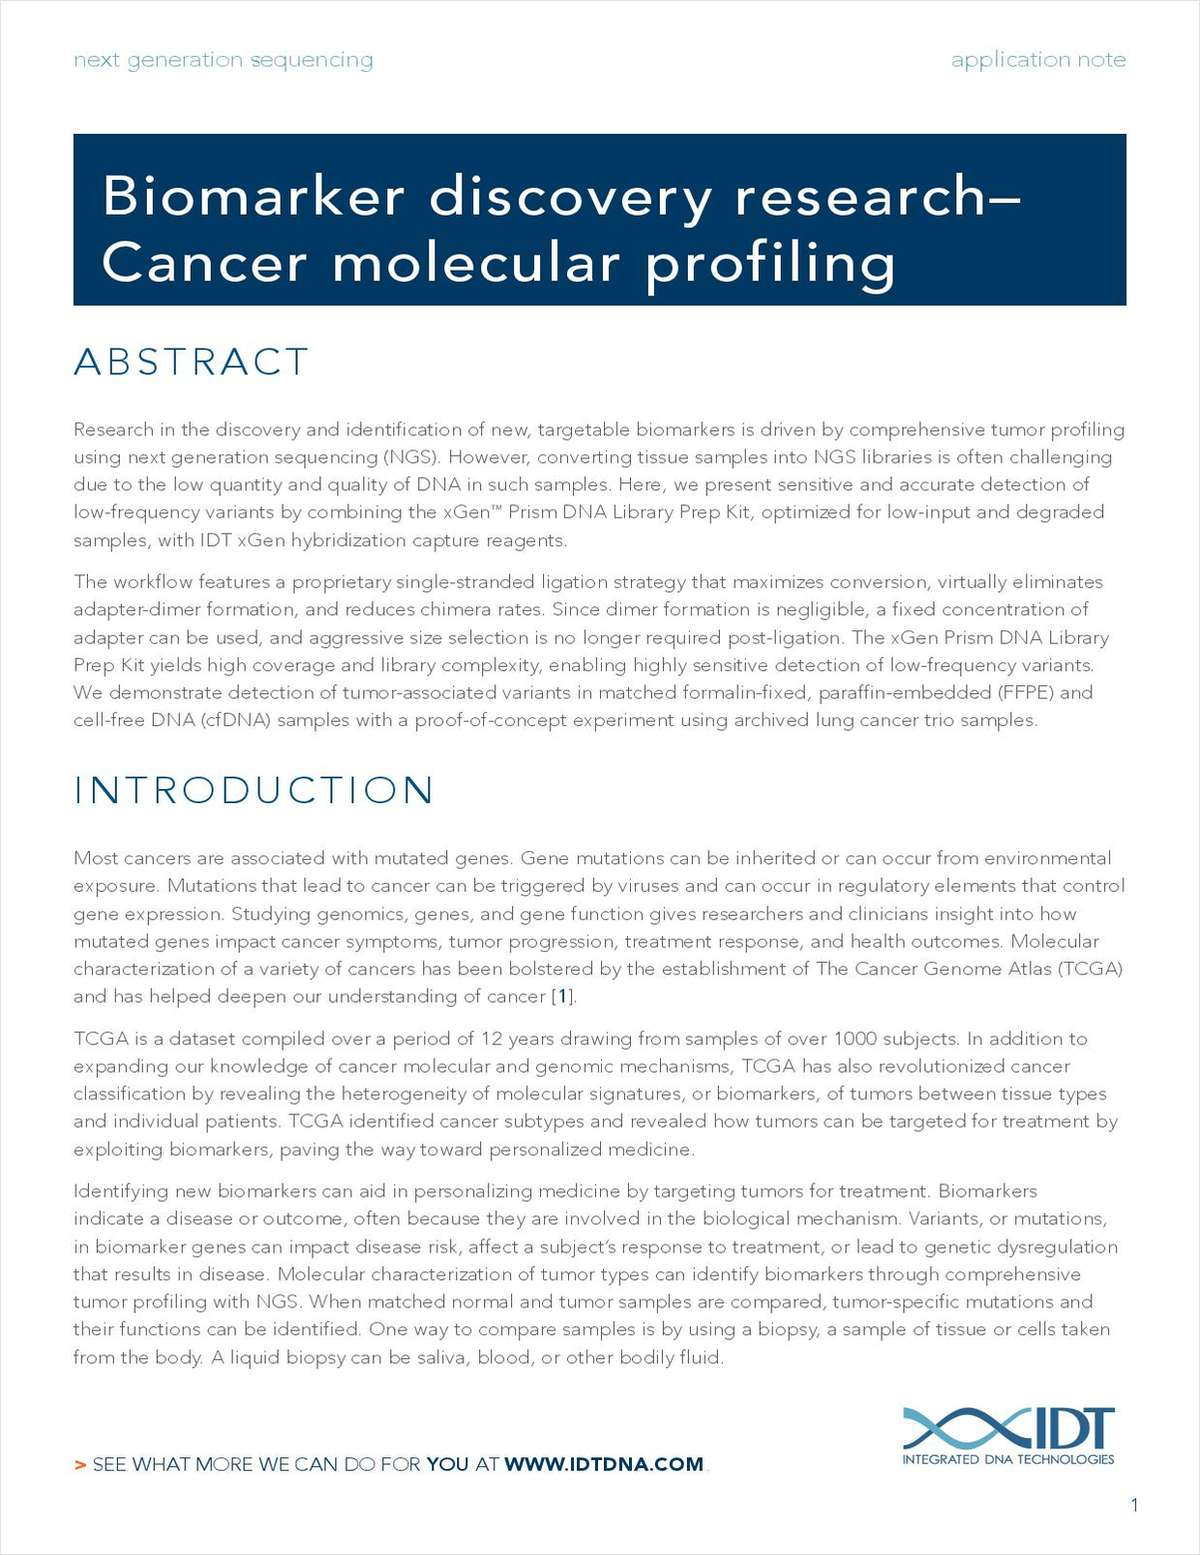 Biomarker Discovery Research -- Cancer Molecular Profiling